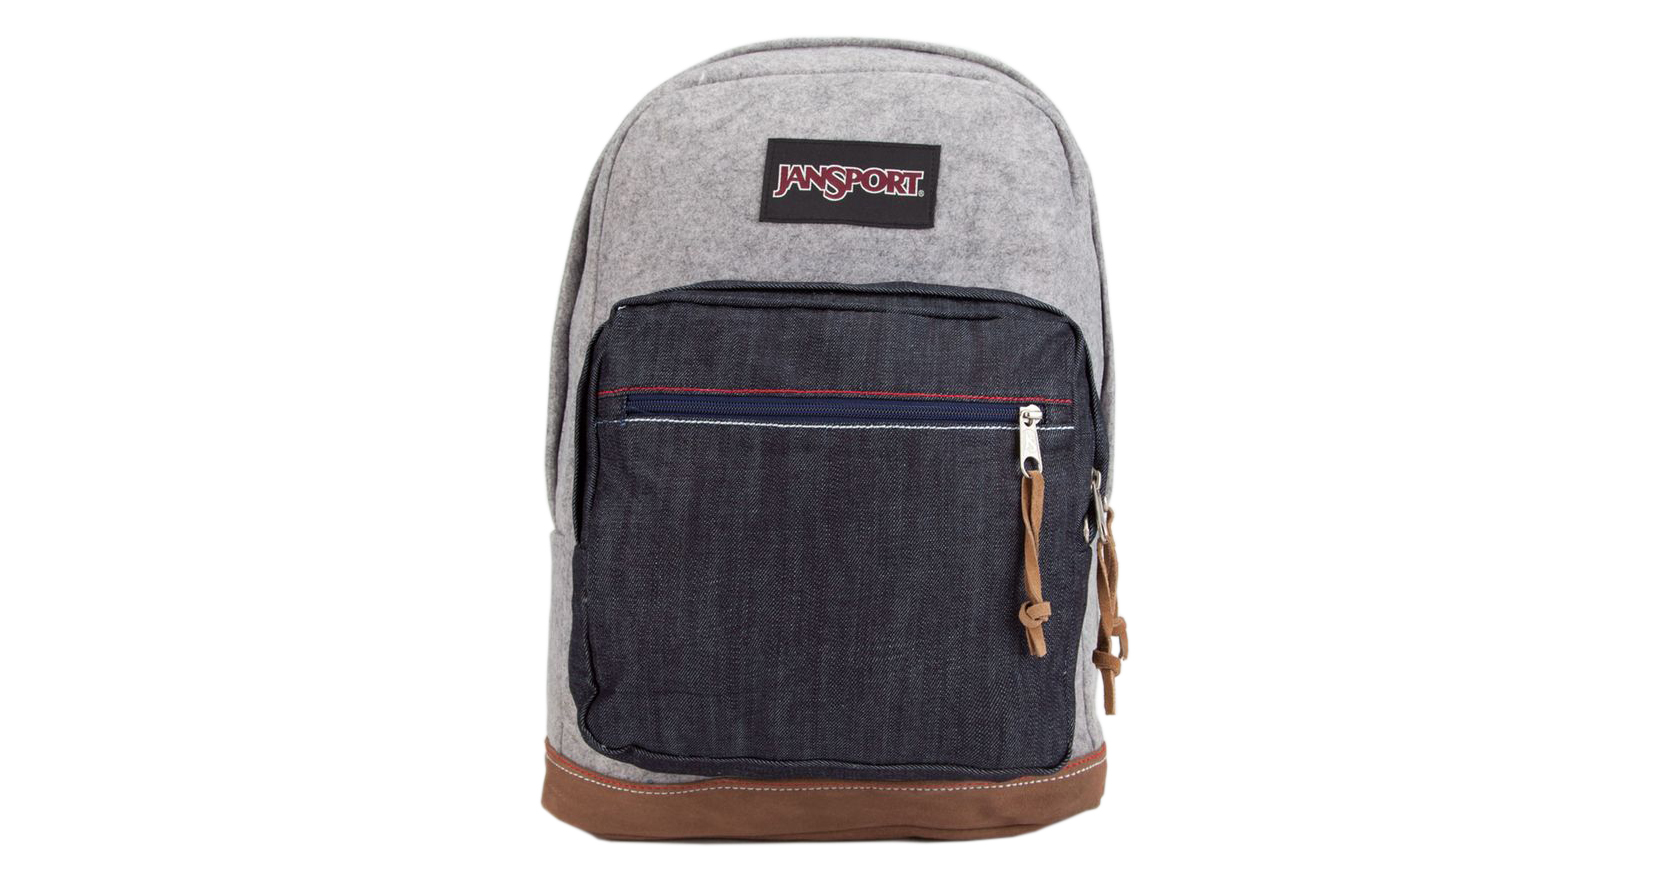 Jansport Right Pack Grey Varsity Felt